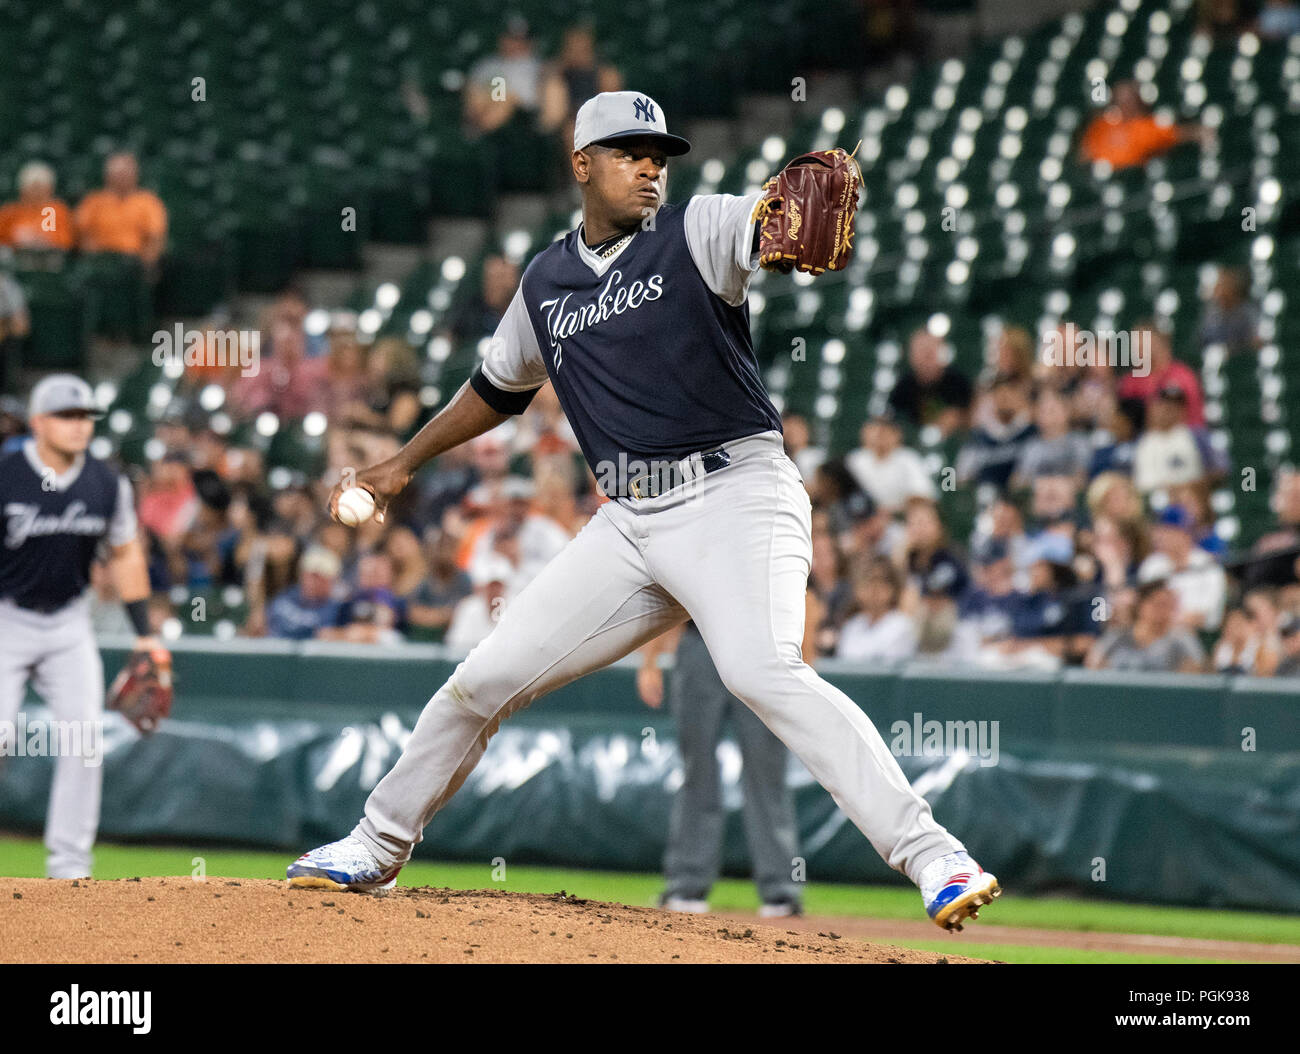 6999158b2388 New York Yankees starting pitcher Luis Severino (40) works in the first  inning against the Baltimore Orioles at Oriole Park at Camden Yards in ...